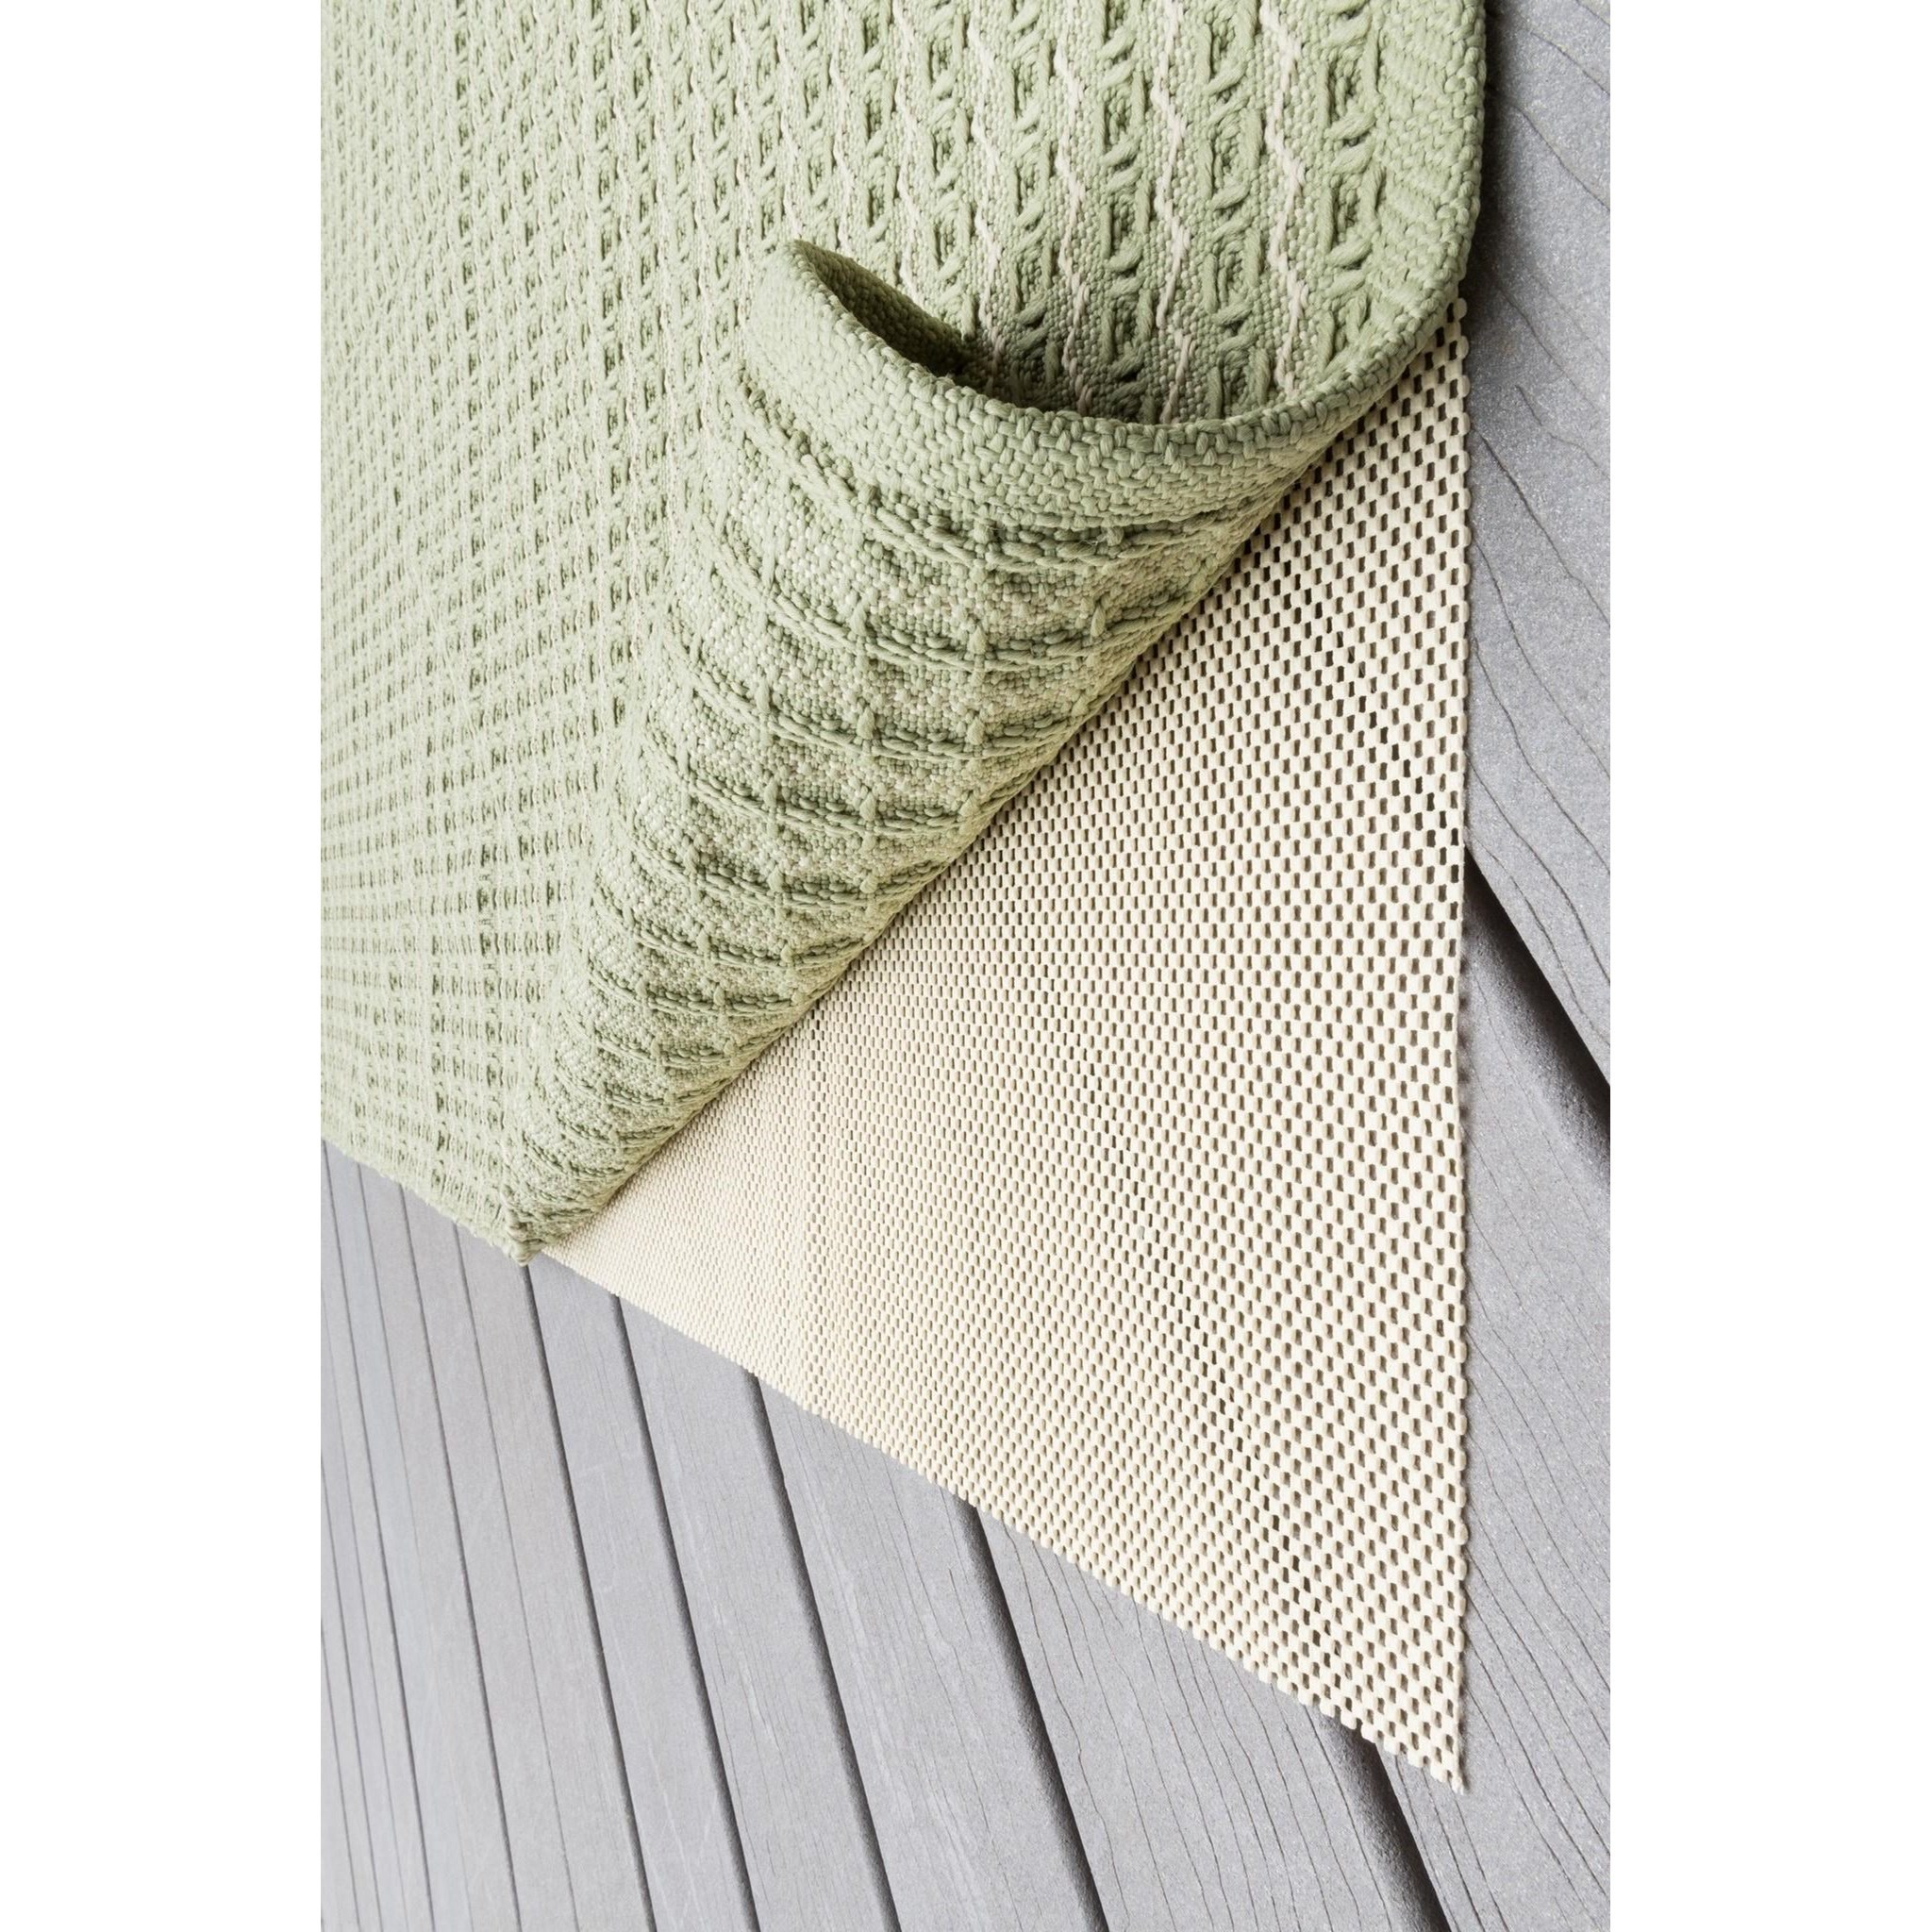 """Outdoor Grip Rug Pad 8'-0"""" X 10'-0"""" Rug by Loloi Rugs at Virginia Furniture Market"""